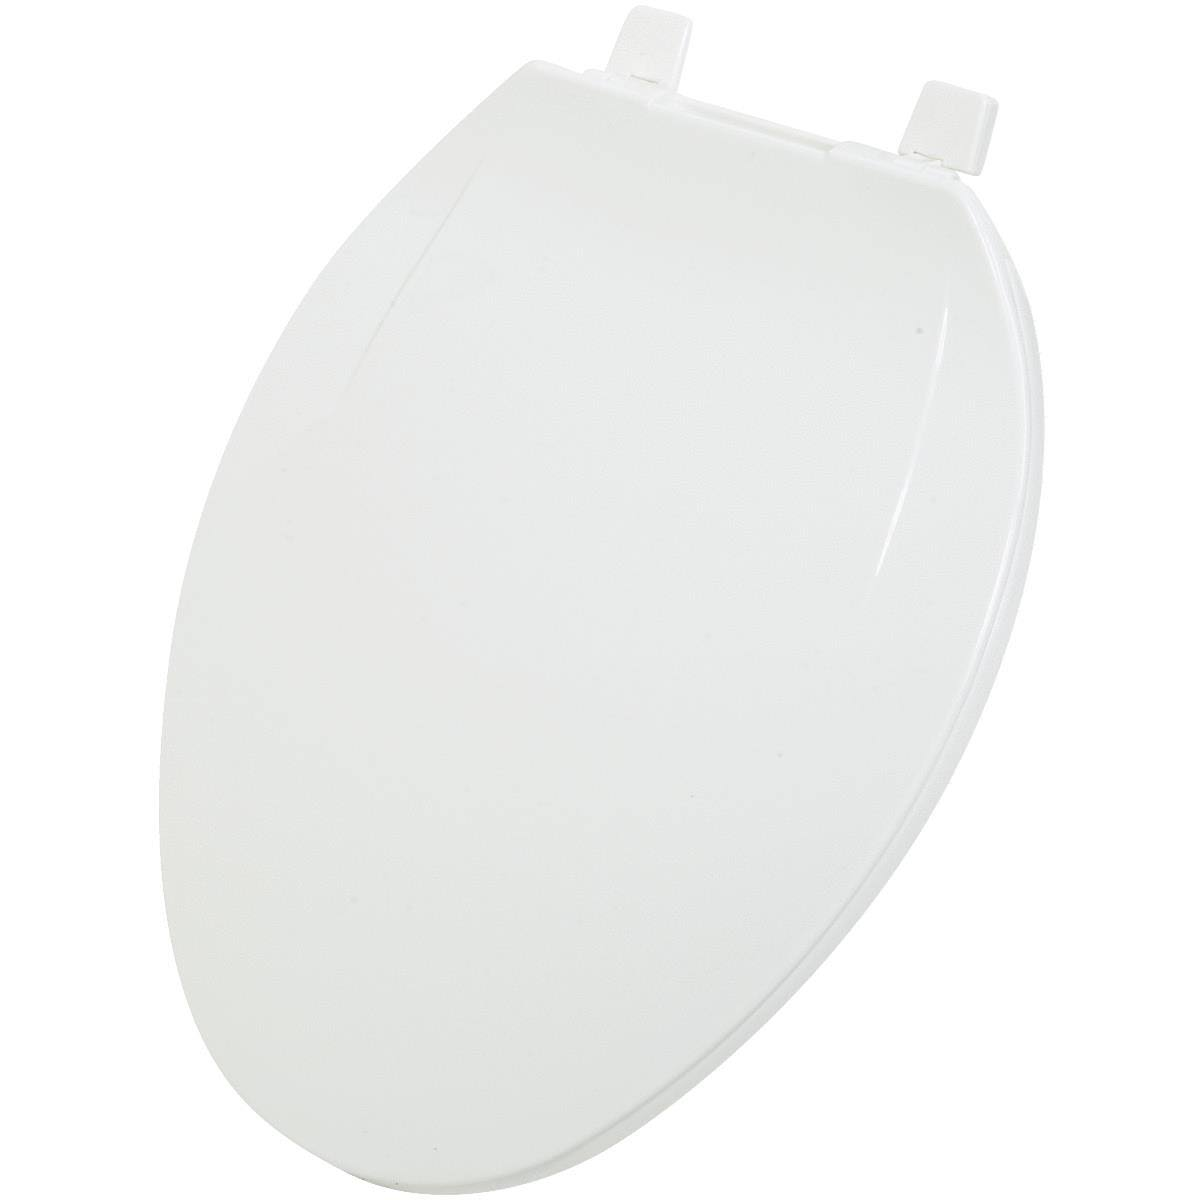 Home Impressions Toilet Seat - Plastic, Elongated